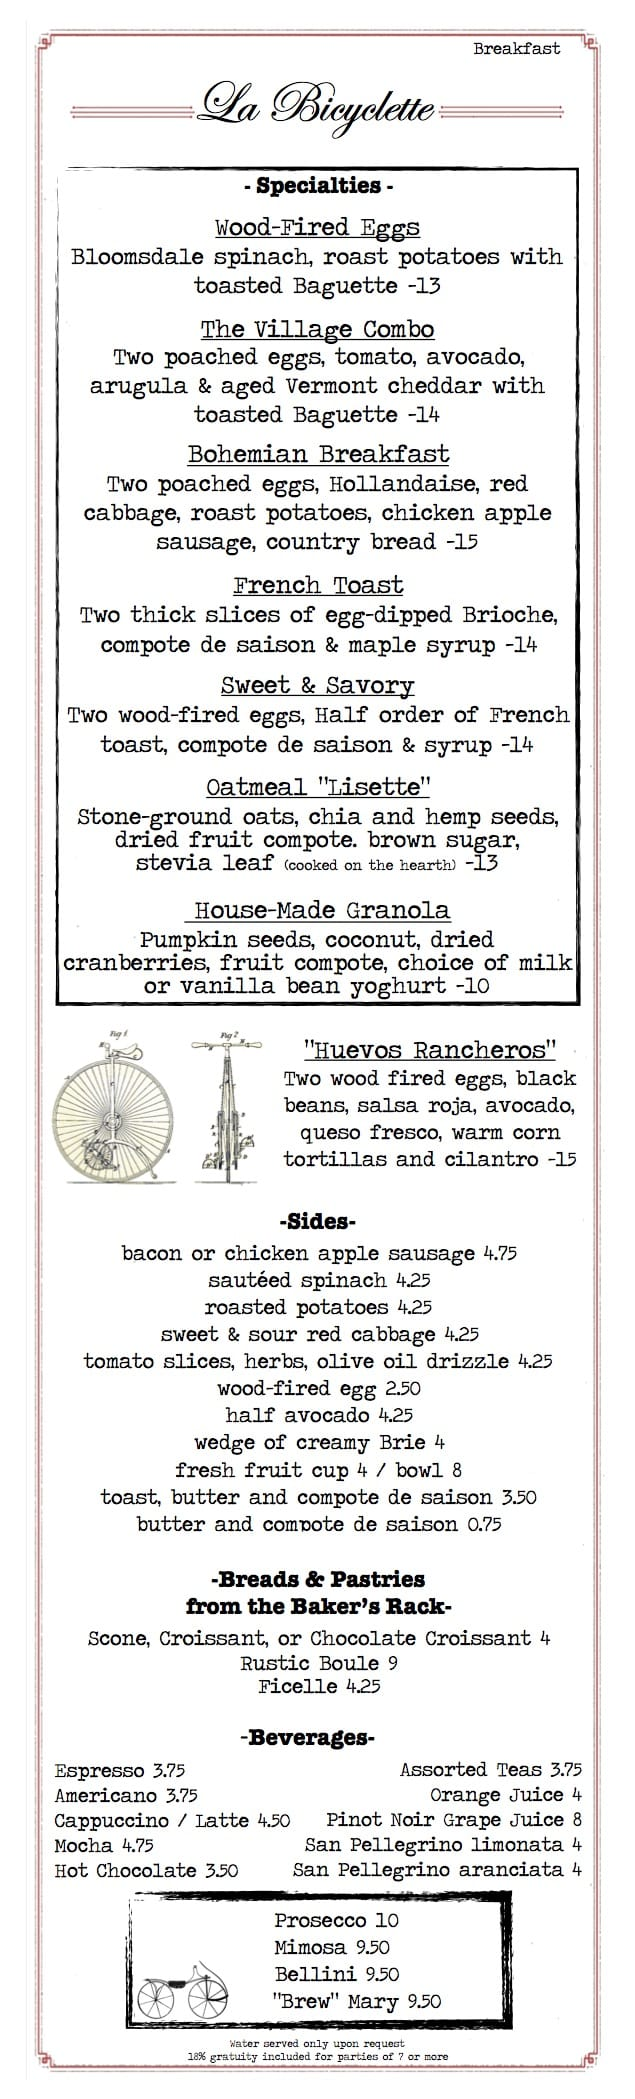 La Bicyclette Breakfast